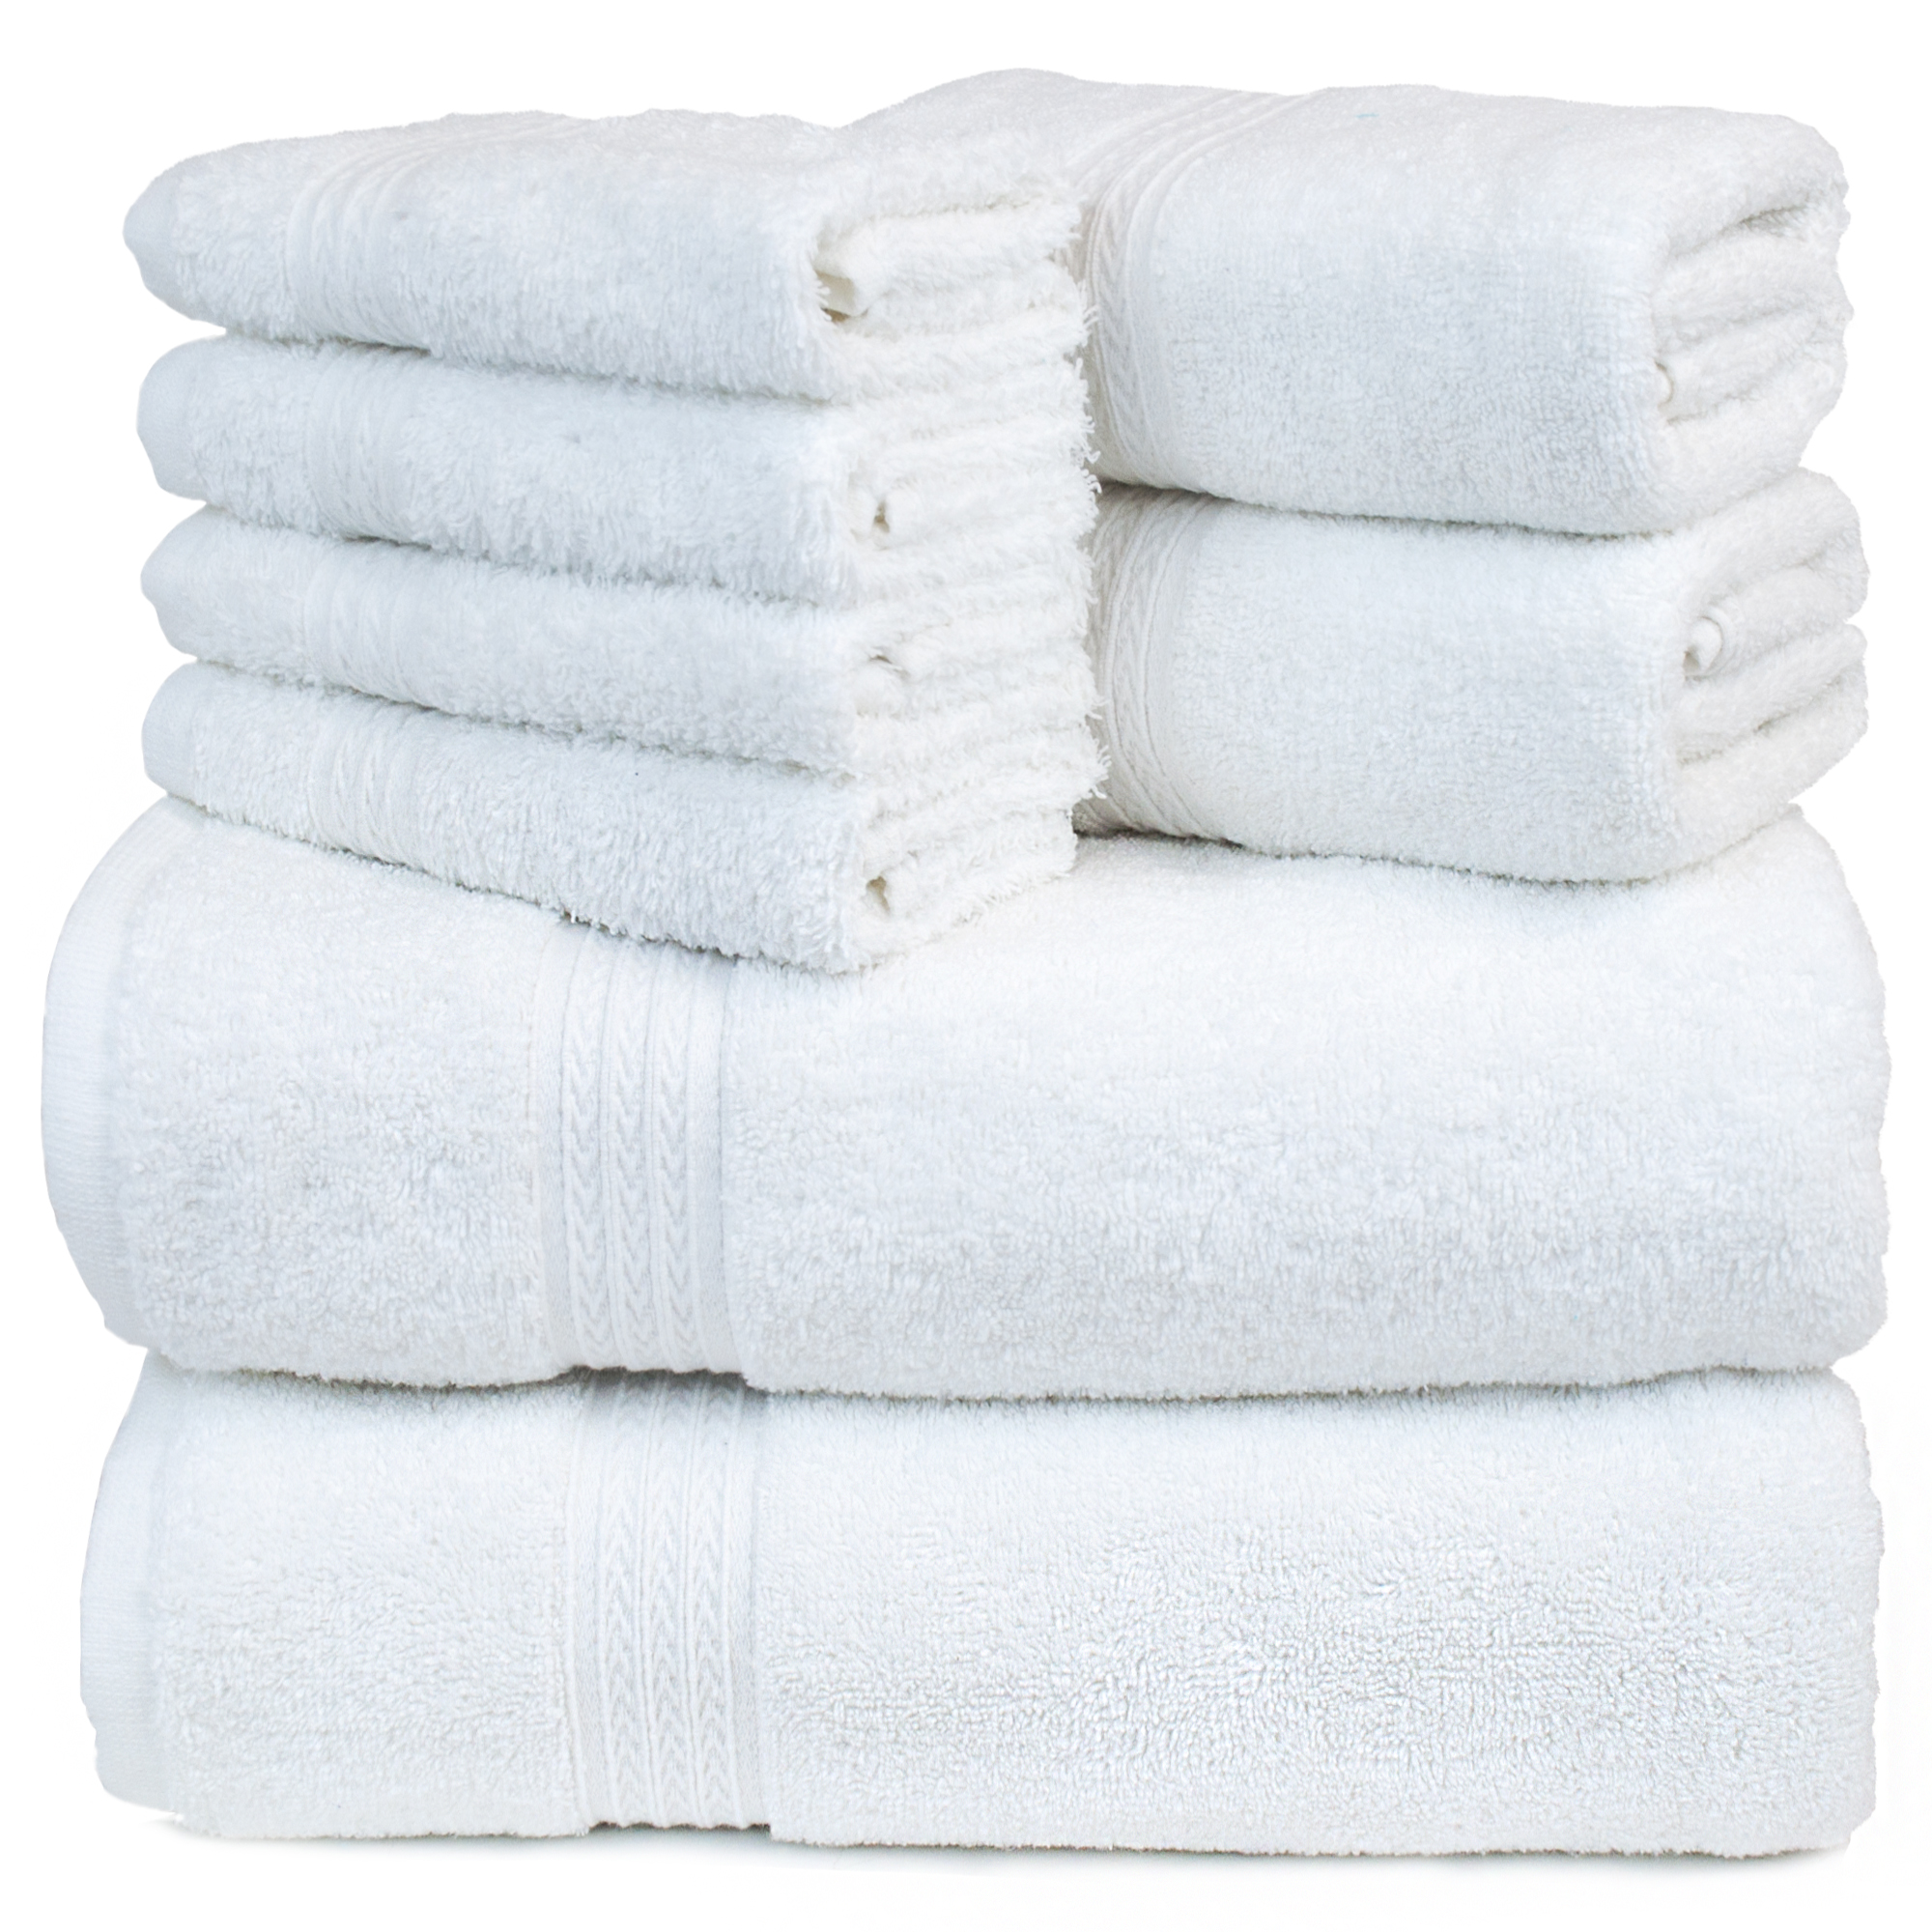 Bare Cotton Eco 4 Piece Towel Bundle - Dobby Border - Two Hand Towels - Two Washcloths